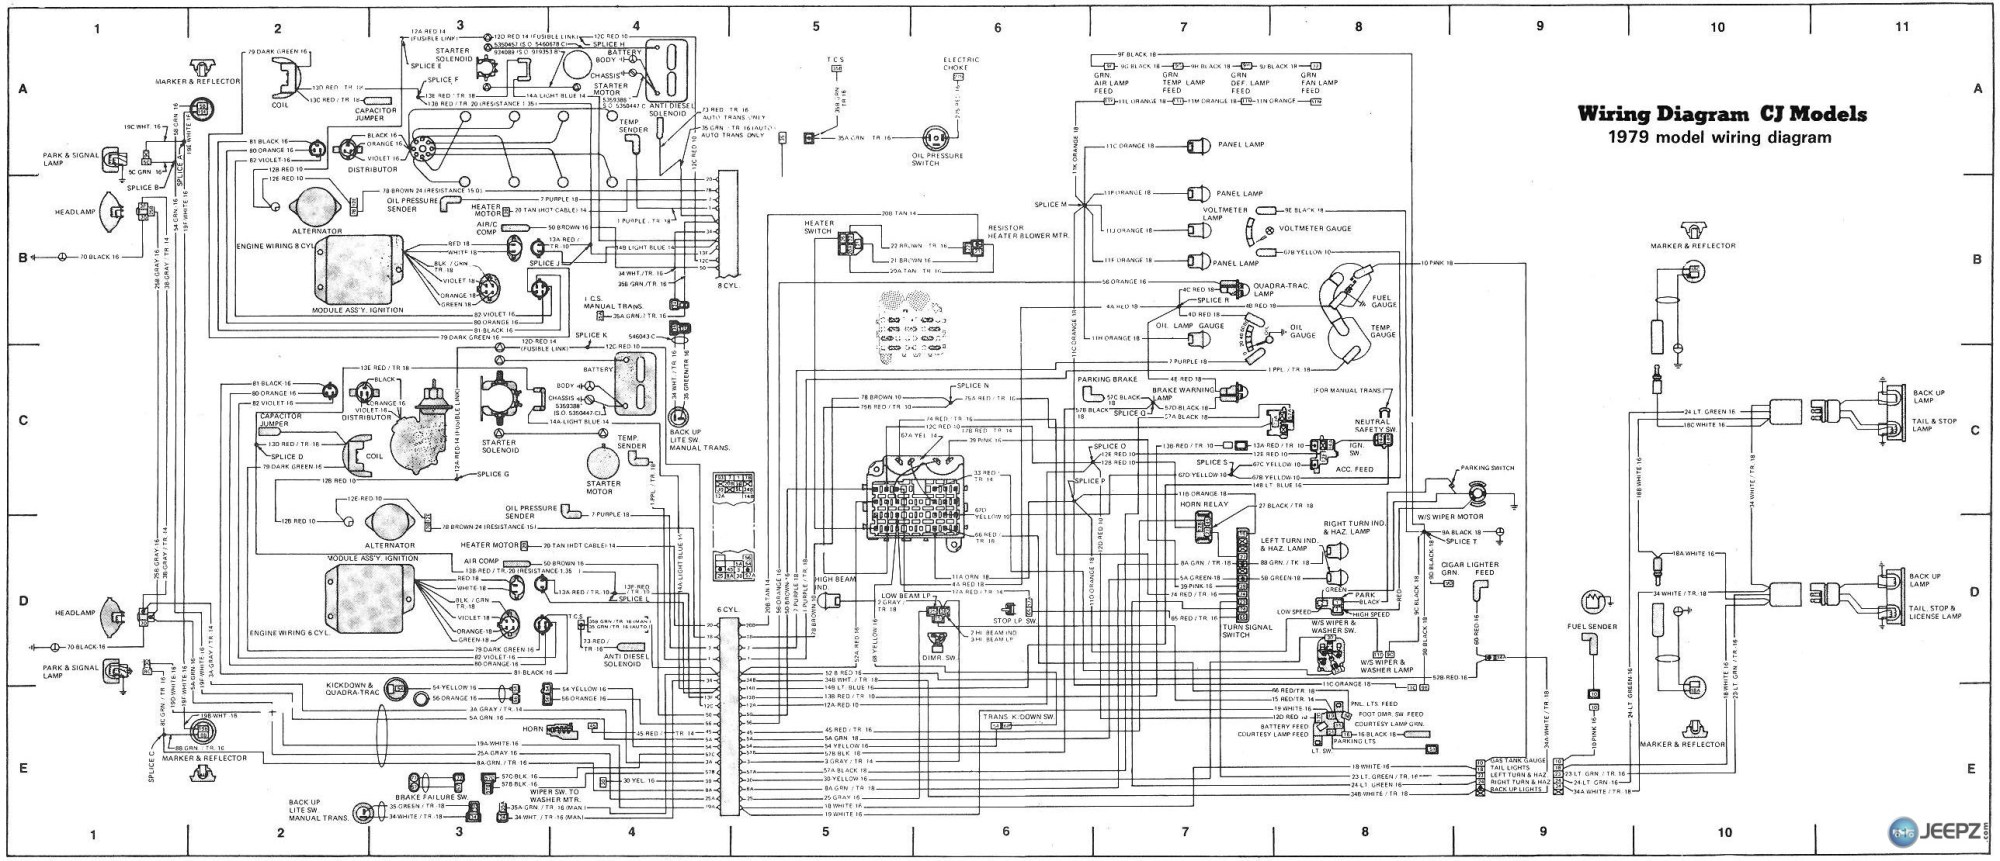 hight resolution of jeep jk headlight wiring diagram wiring library jeep wrangler black headlights cj headlight wiring colors jeep